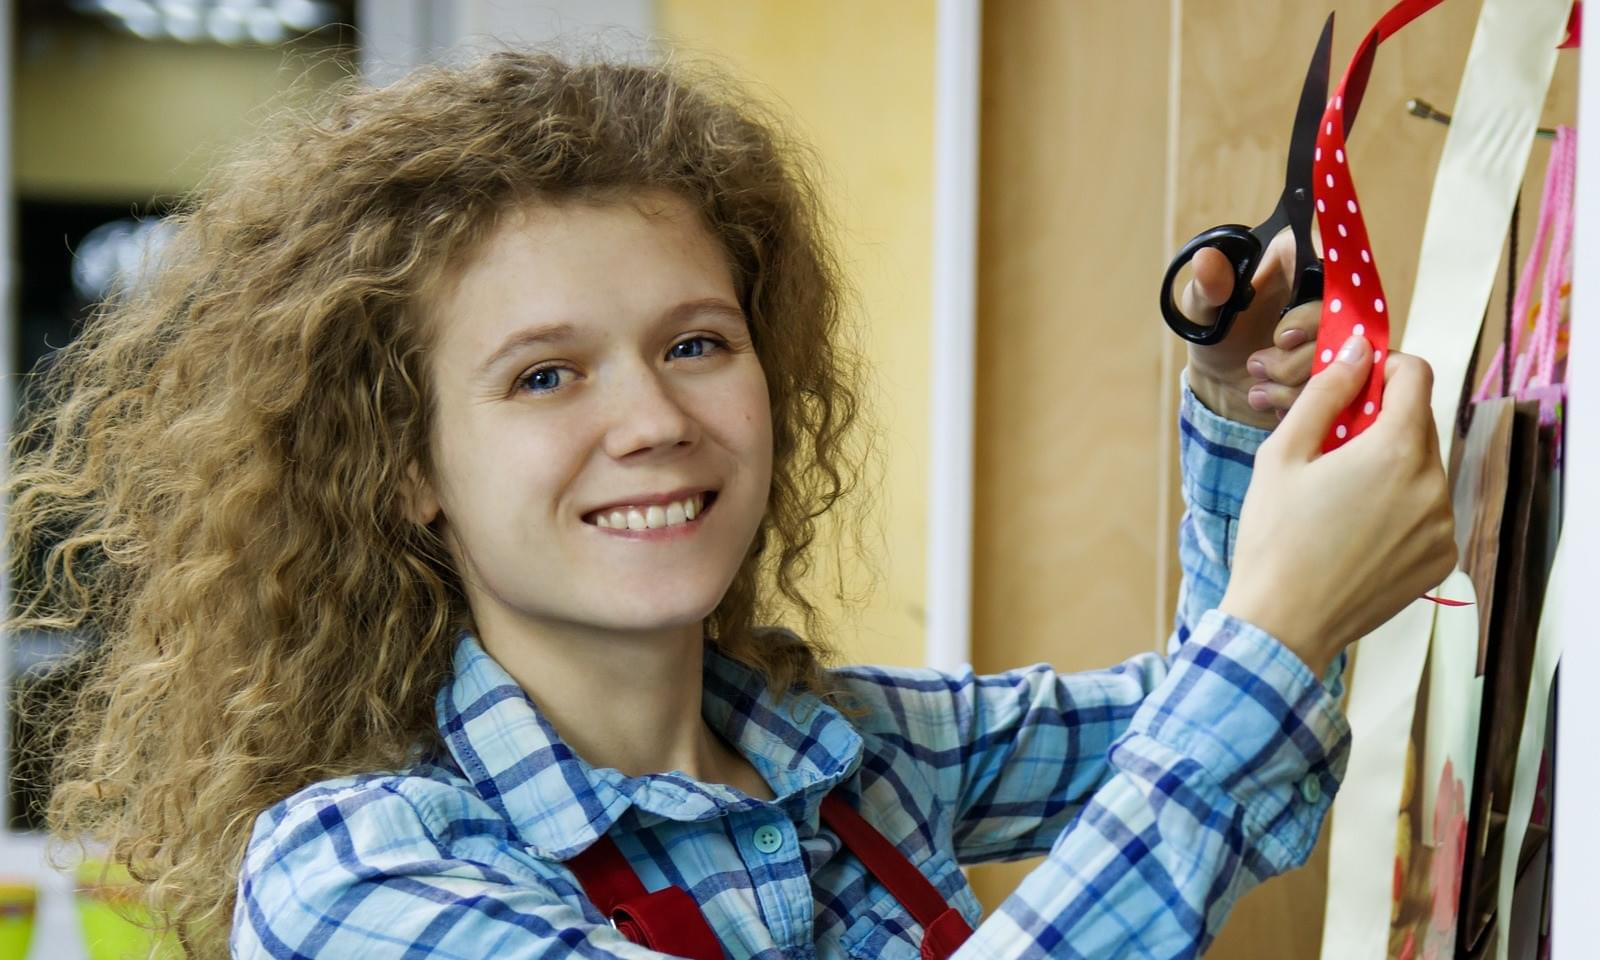 BAE Systems support female engineers